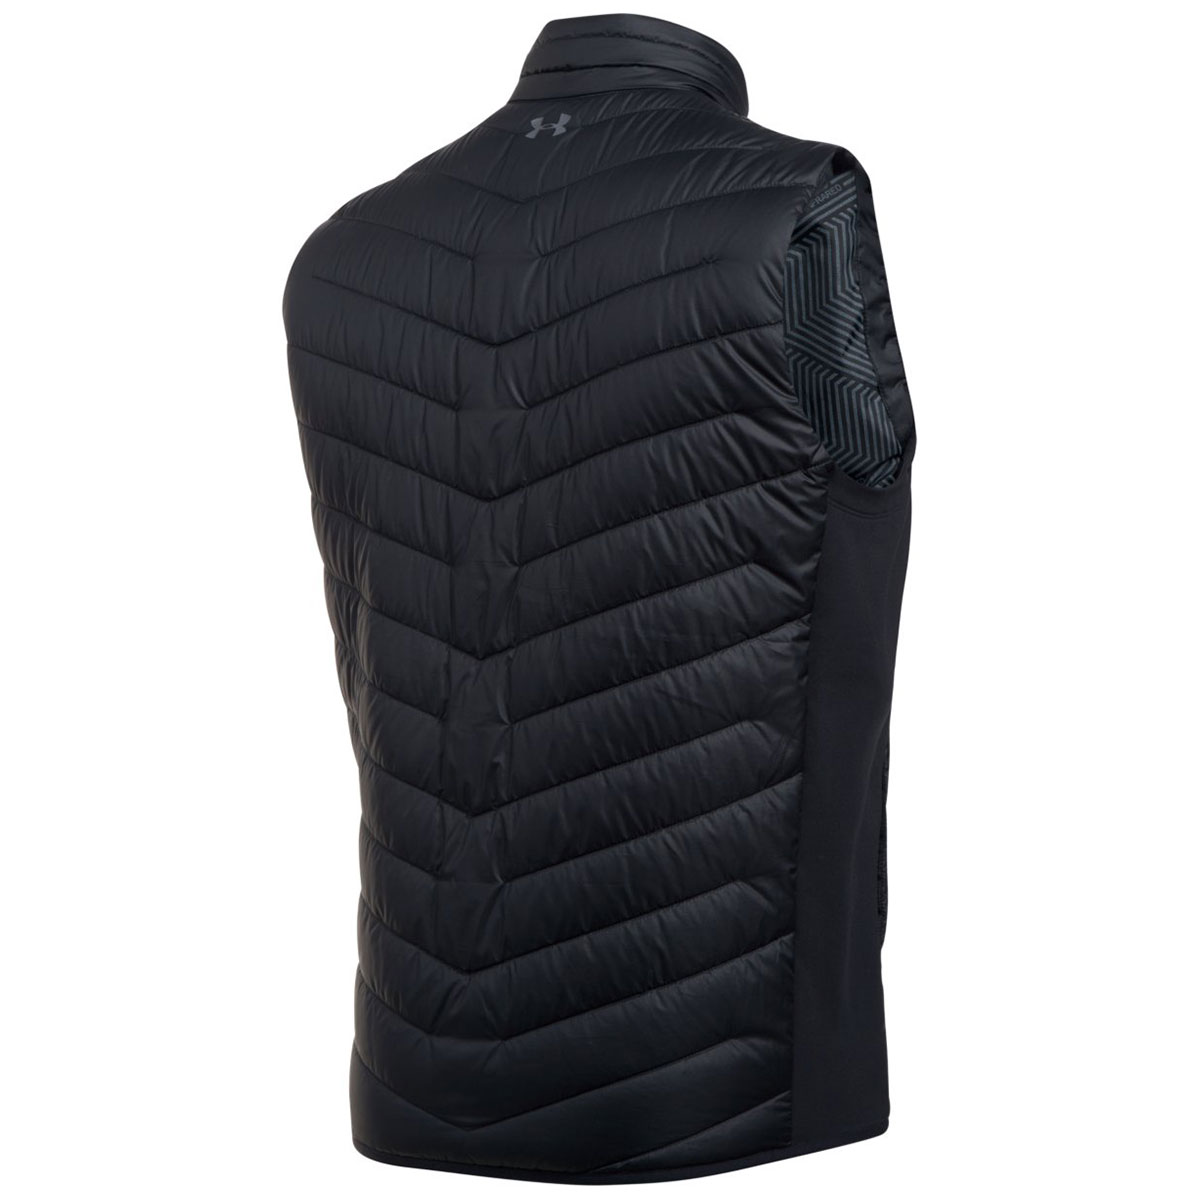 a3ee9bd0ad37d Cheap under armour down vest Buy Online >OFF33% Discounted